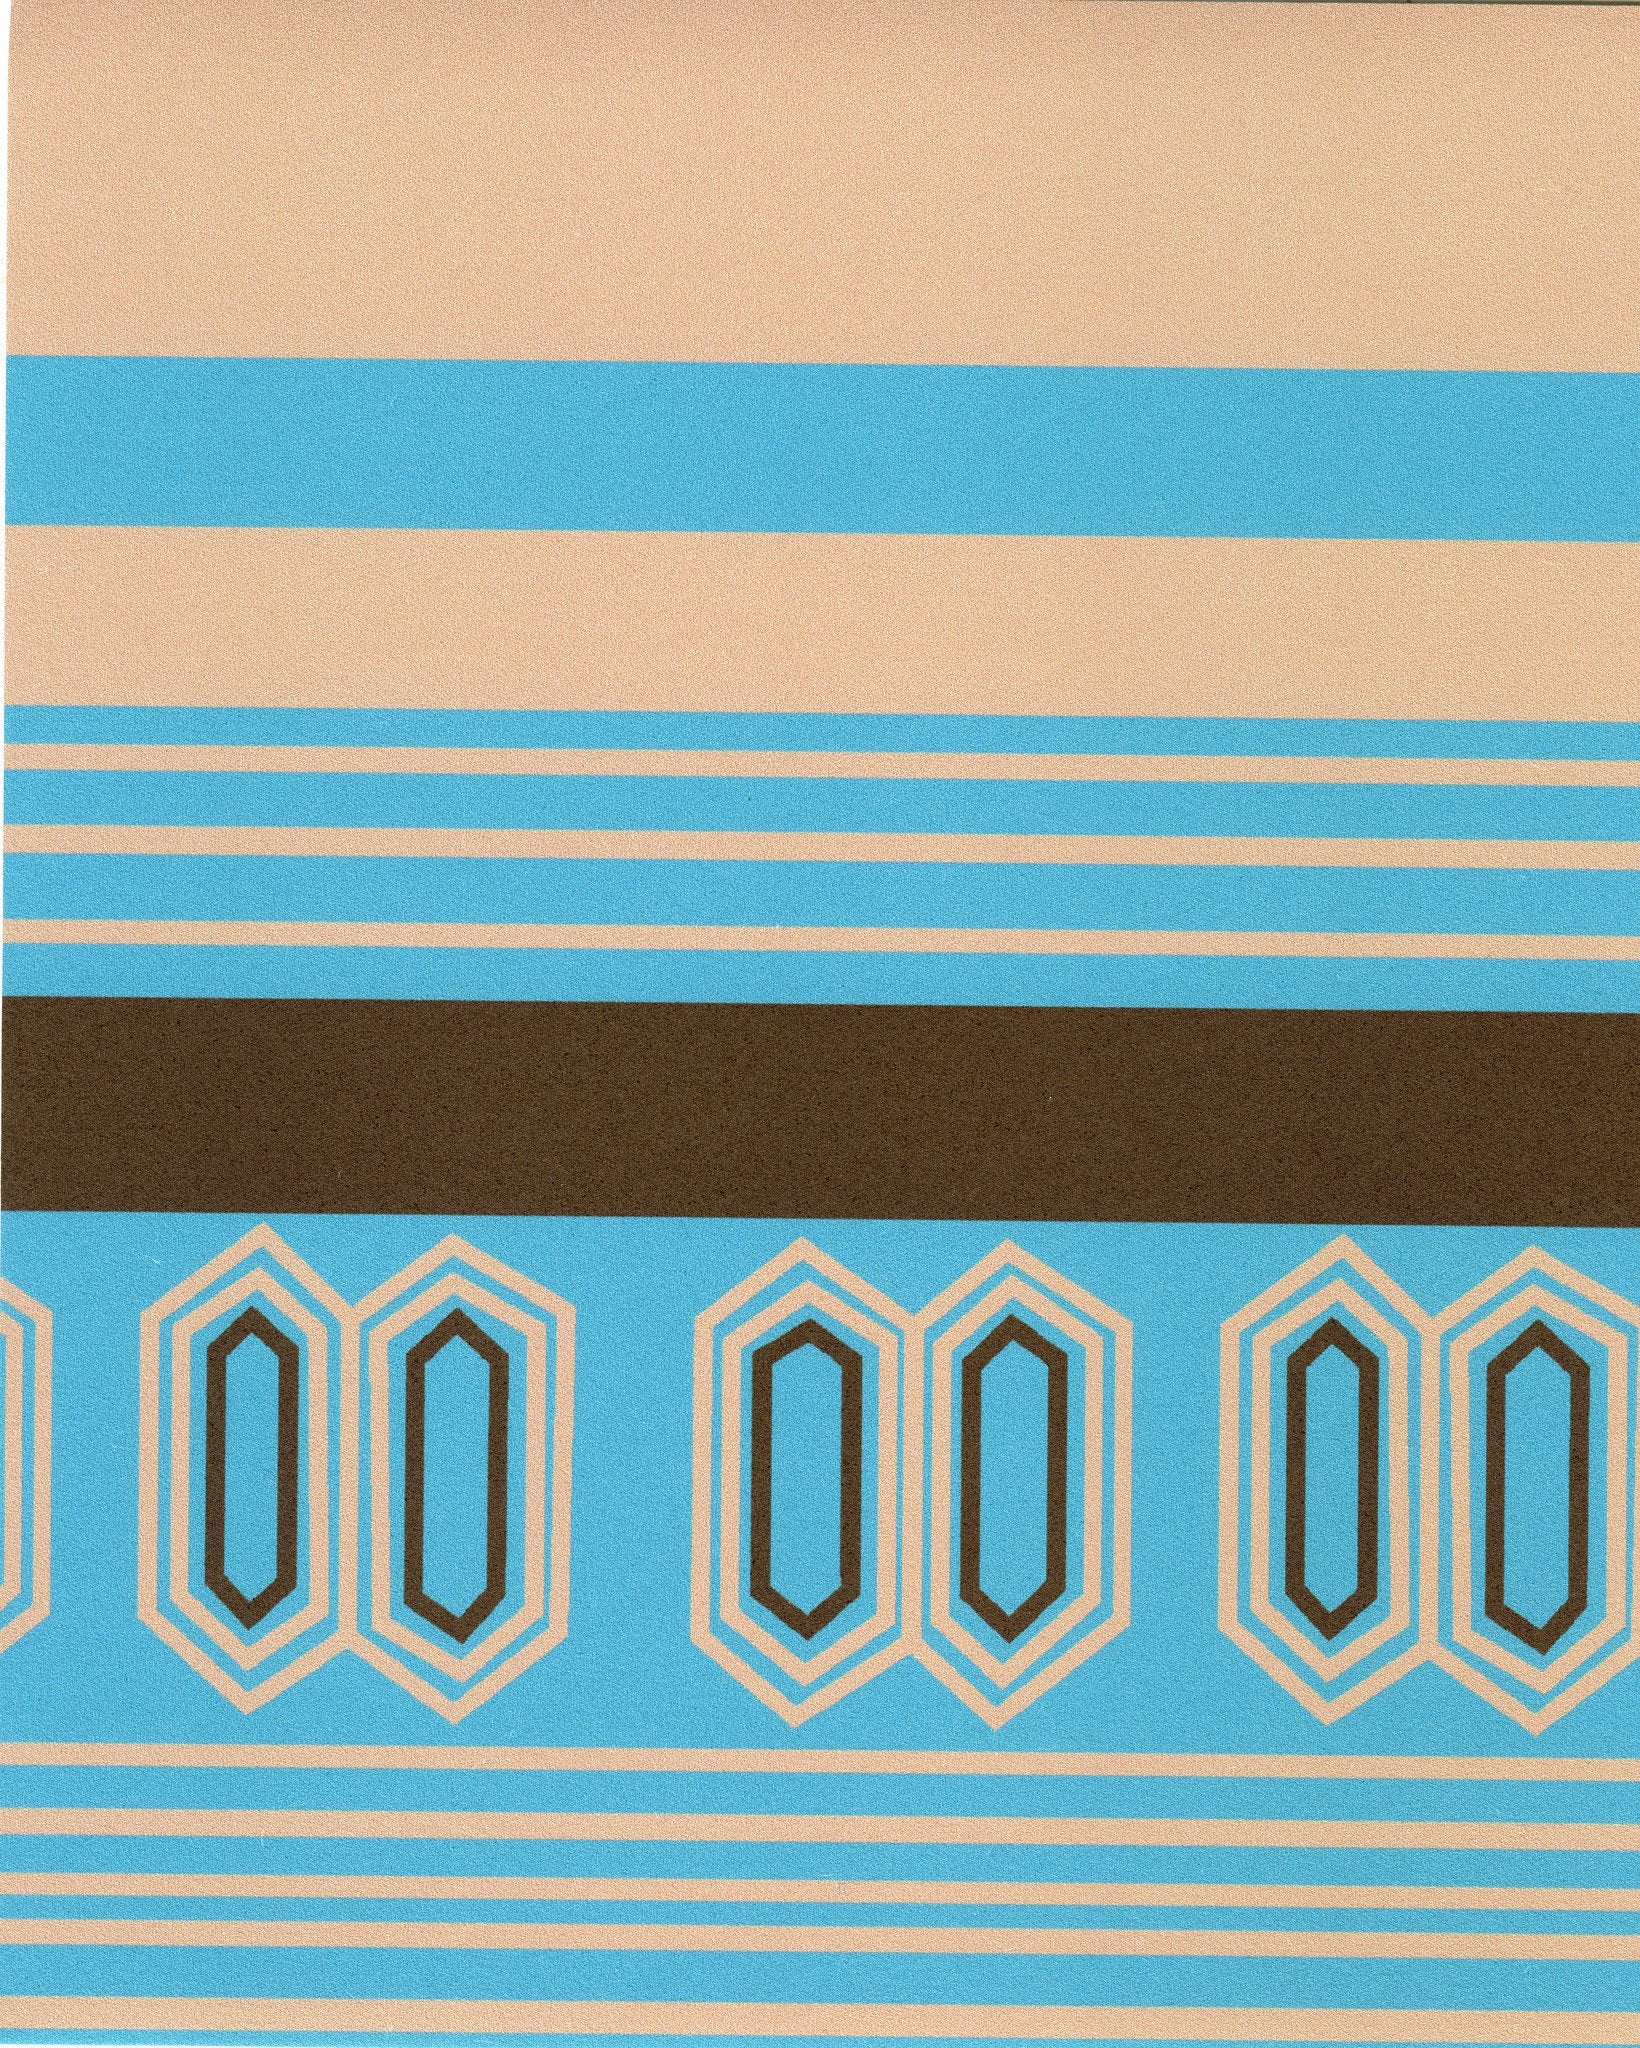 Swatch of Lumley Blues/Tropic Marine Wallpaper